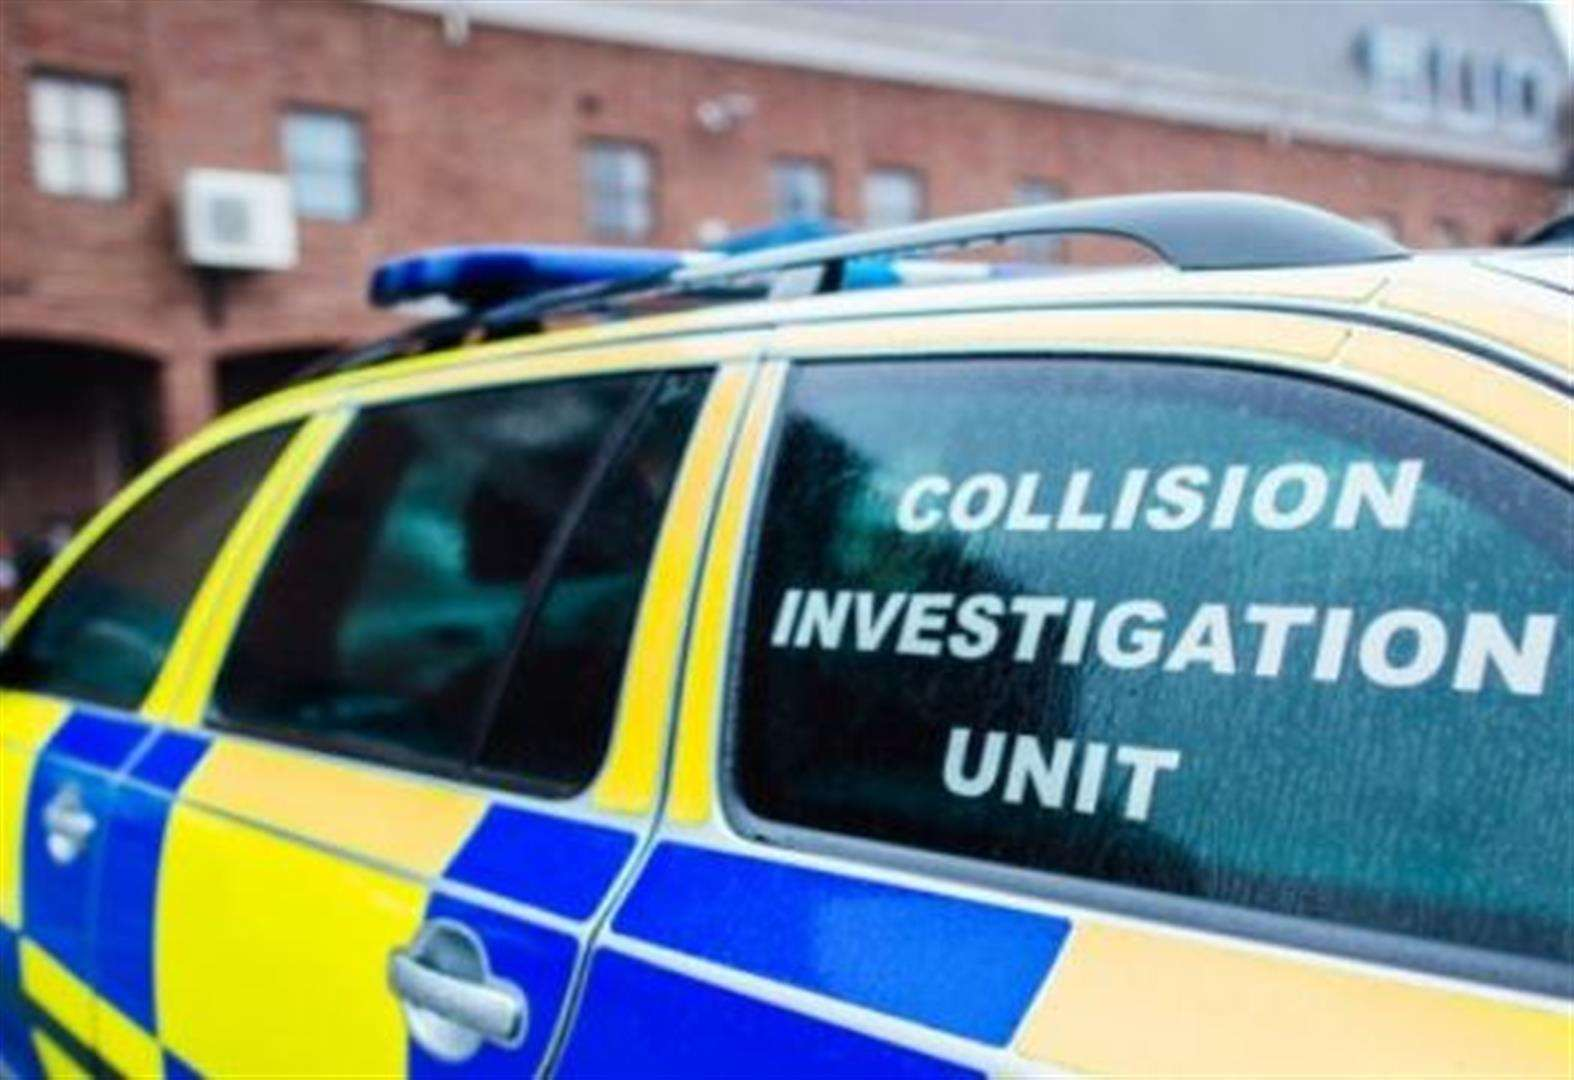 Kent Police collision investigation unit - Stock Image (1614810)